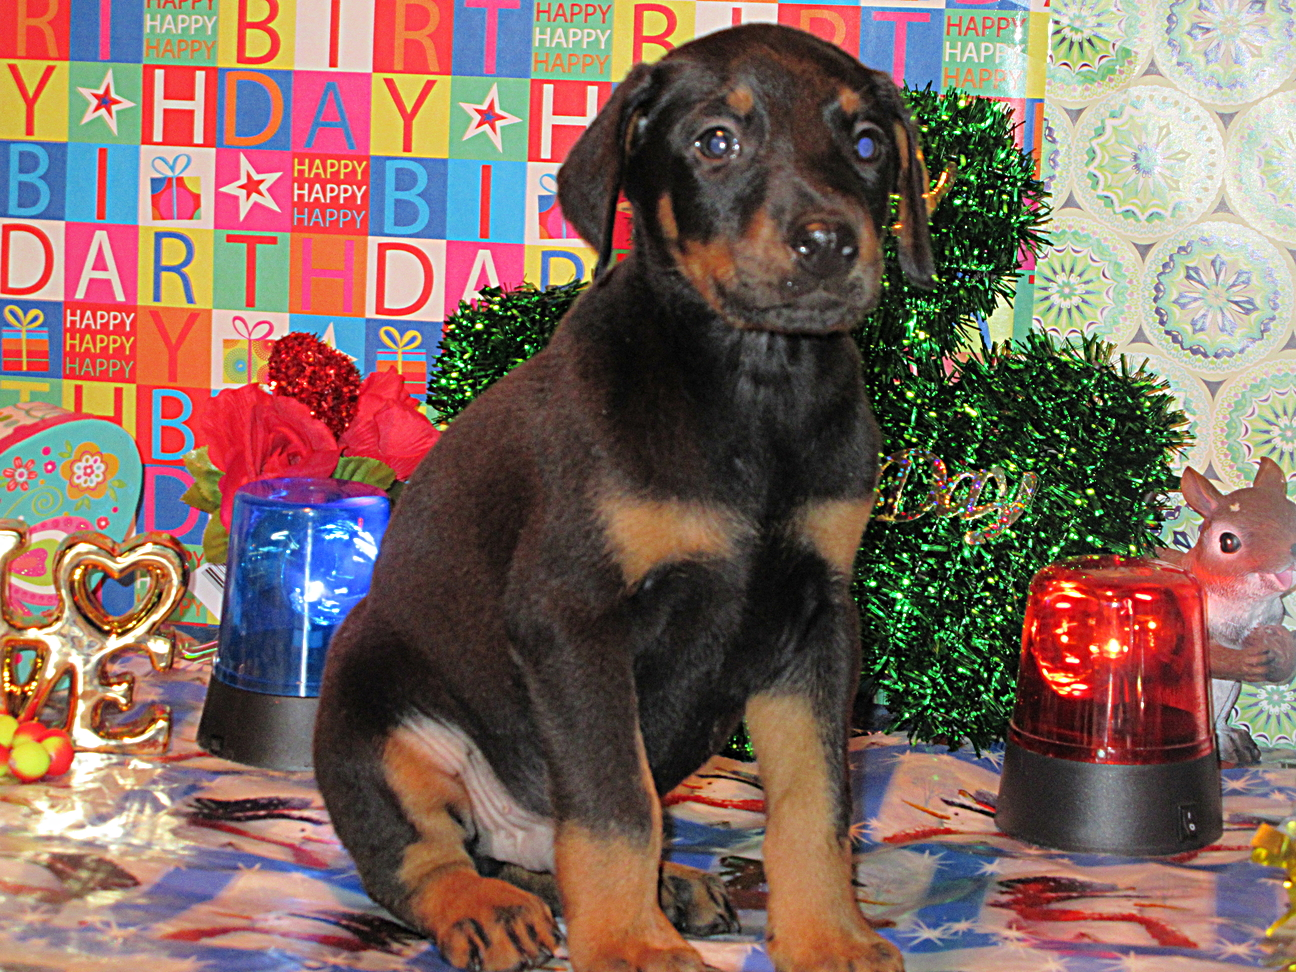 DOBERMAN PINSCHER PUPPIES FOR SALE /  VIDEOS EMAILED TO YOUR COMPUTER / IS THIS HALLOWEEN THE NIGHT YOUR DOBERMAN COMES HOME?